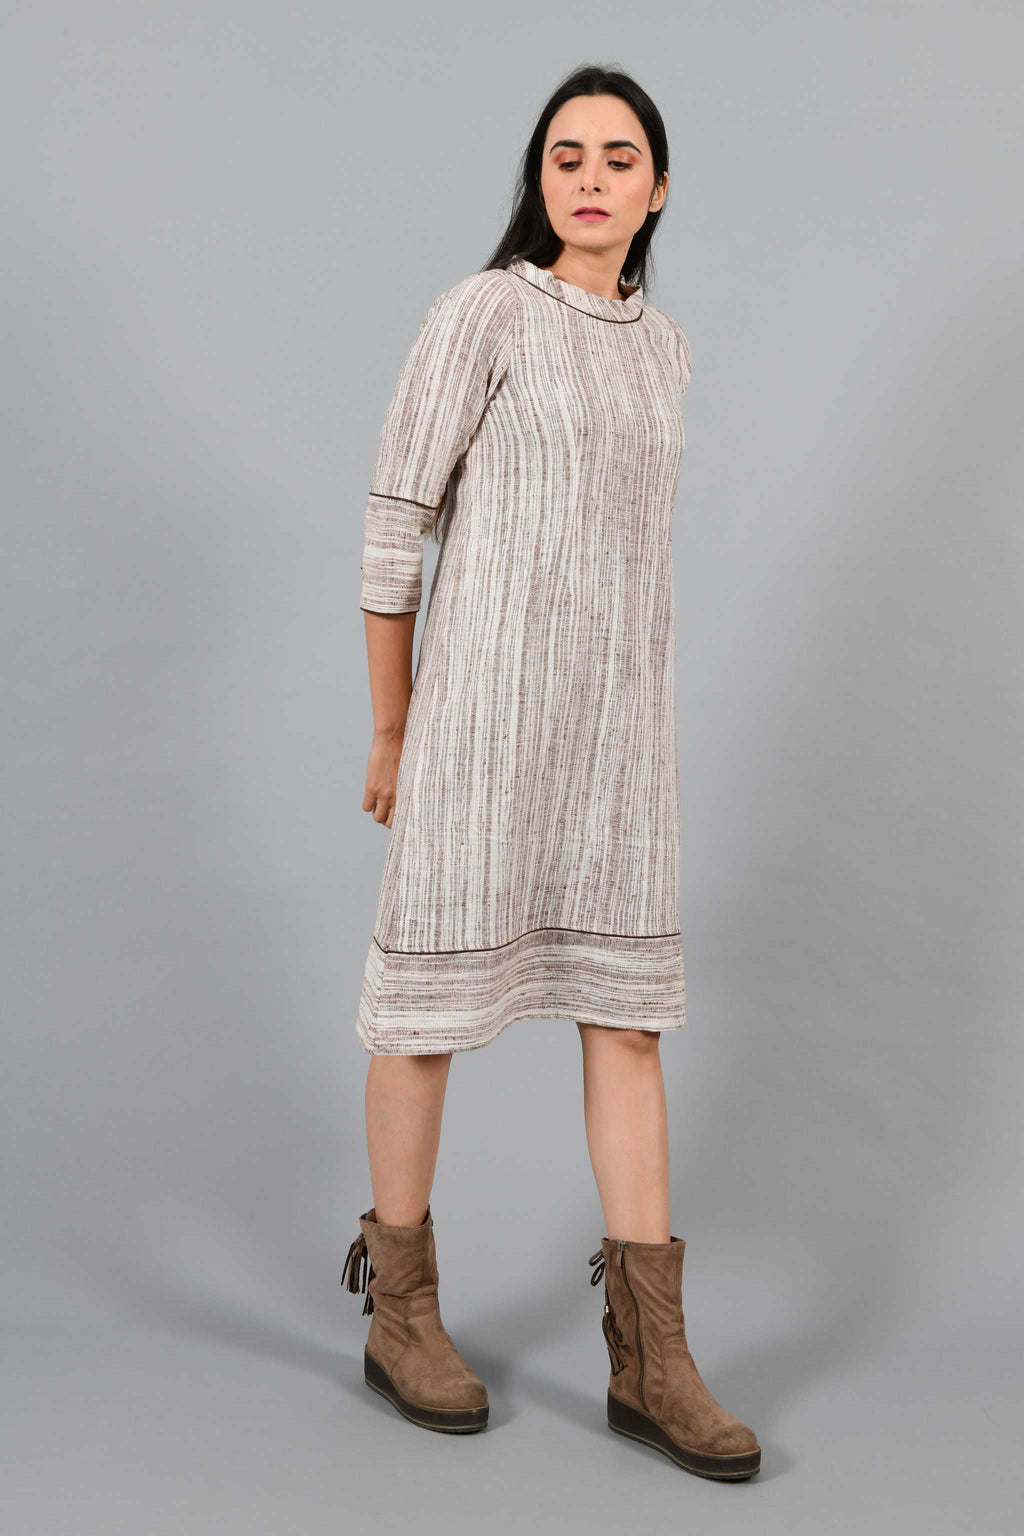 Side walking pose of an Indian Womenswear female model wearing brown handspun and handwoven cotton a-line dress by Cotton Rack.